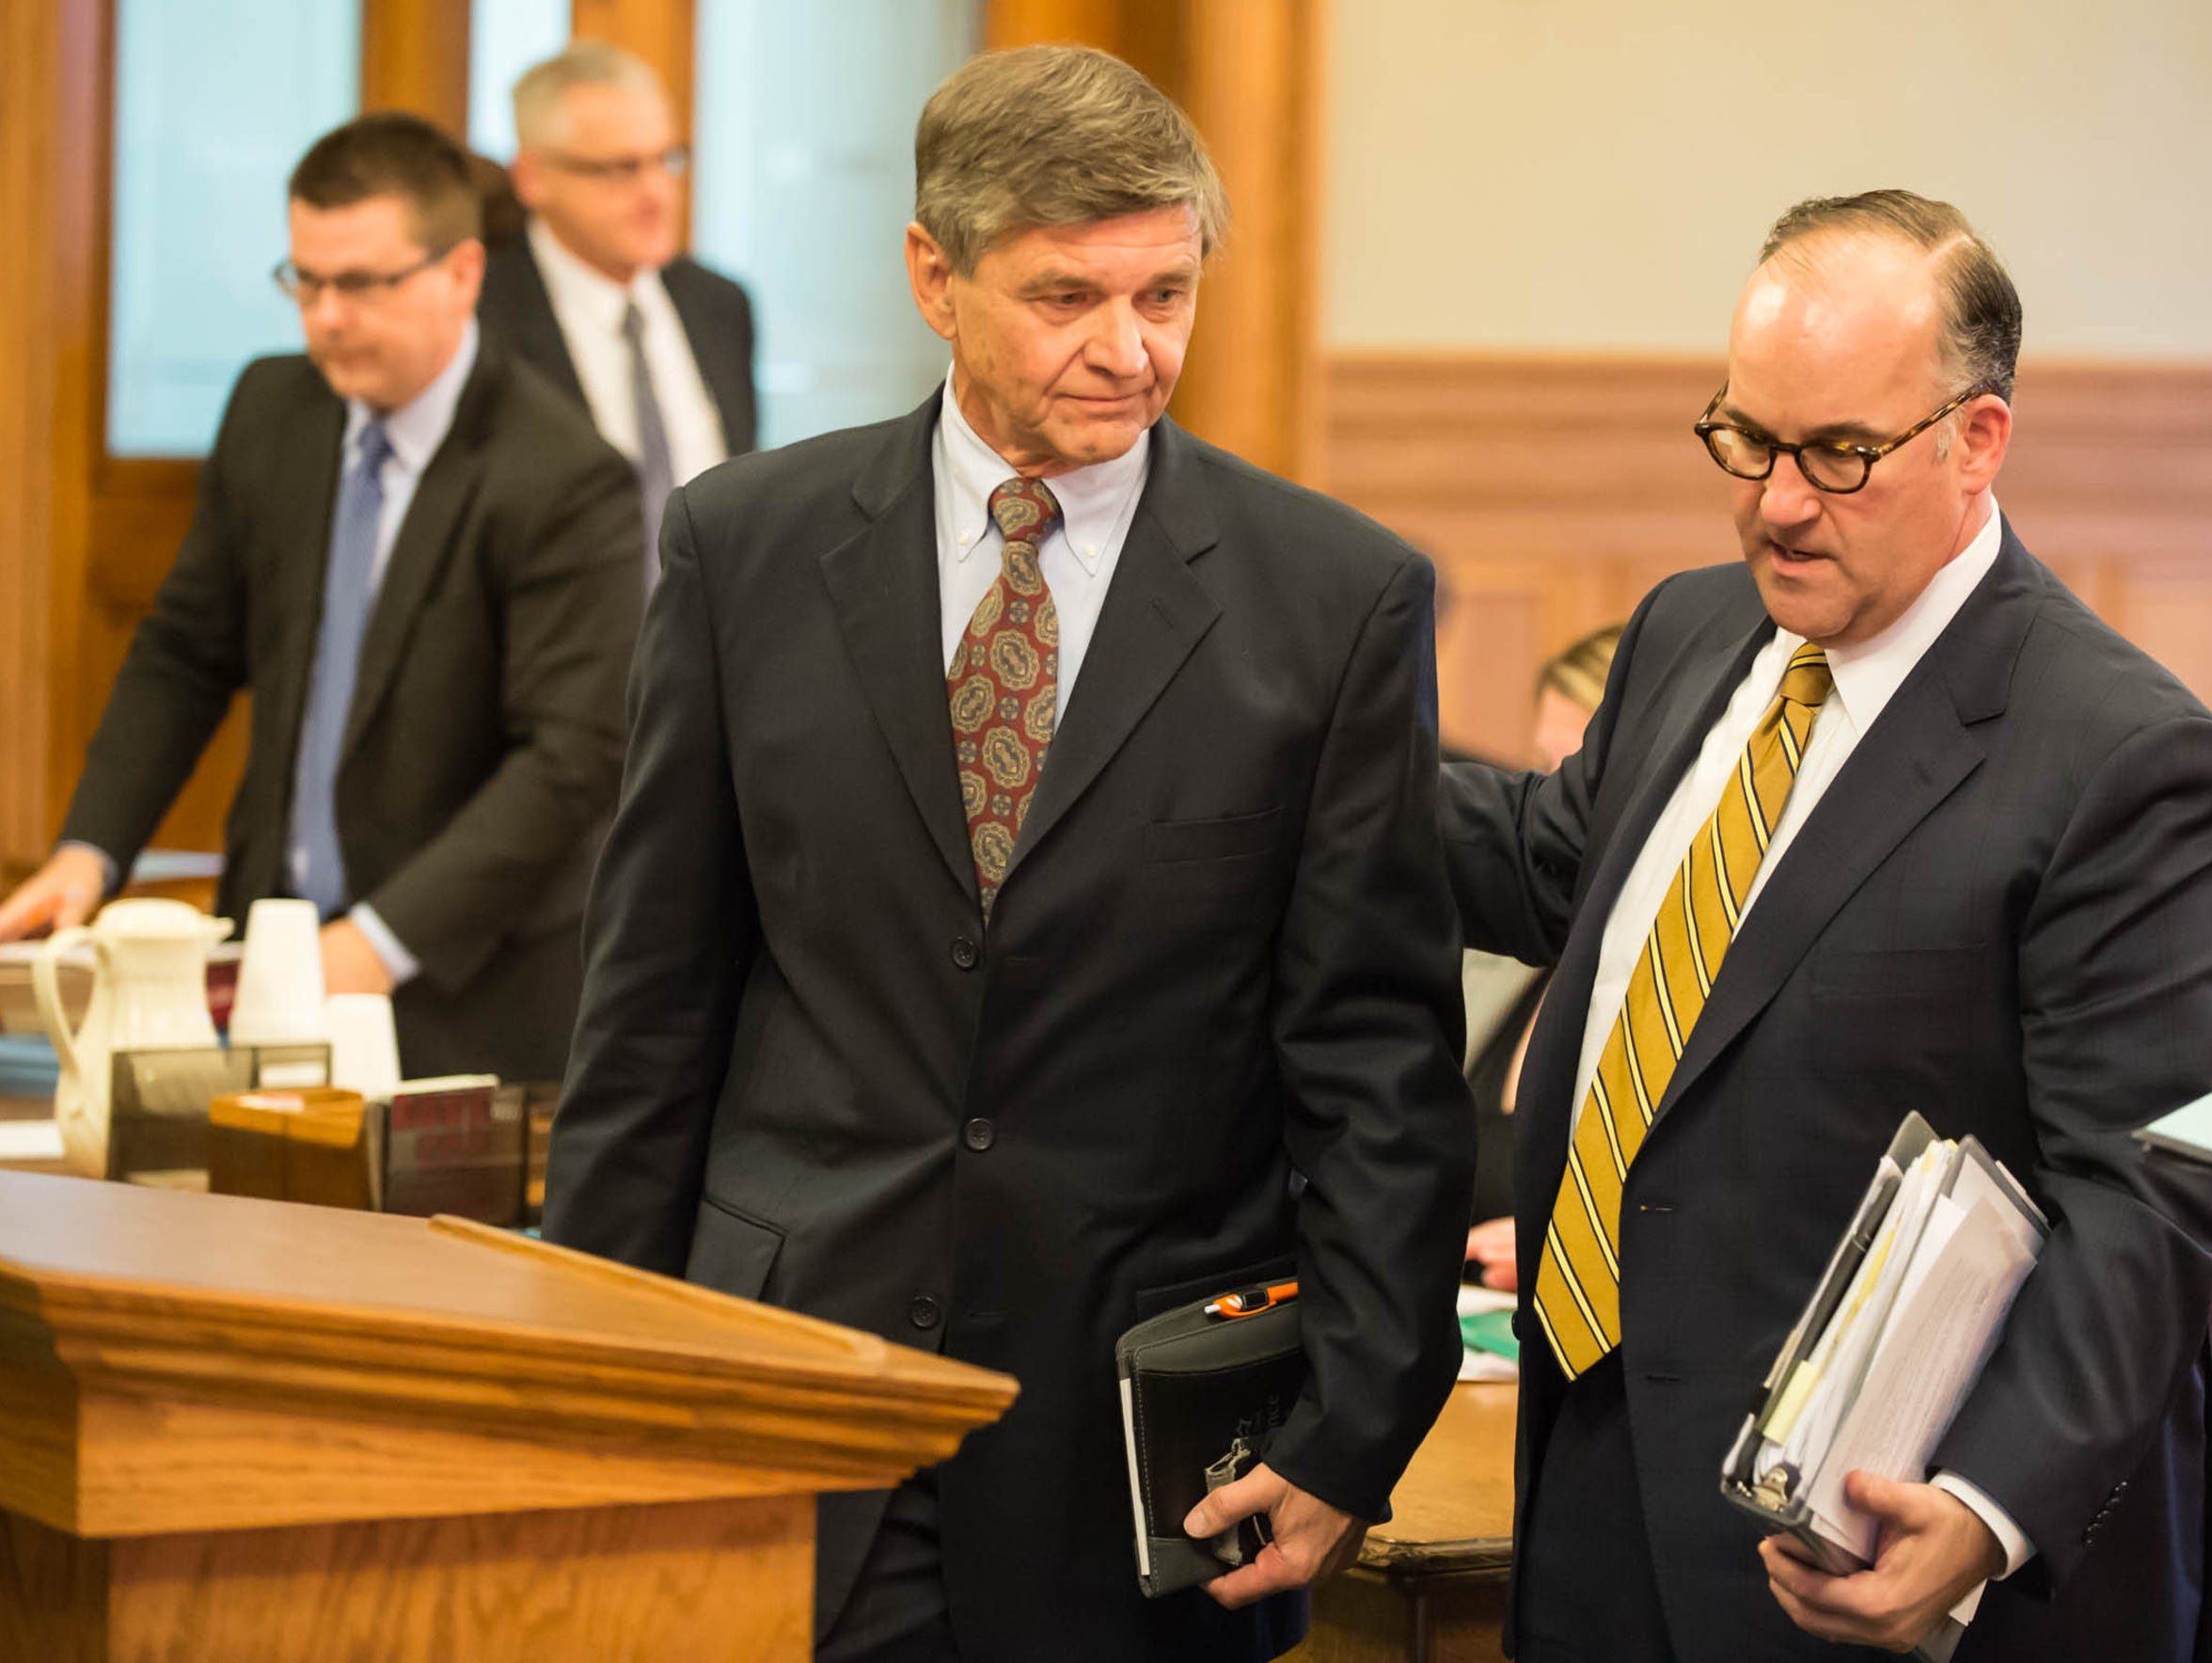 In 2015, former Summit Pointe CEO Erv Brinker walks up to the podium with one of his attorneys, Matthew Vicari, as he prepares to plead guilty to Medicaid fraud and embezzlement charges in Ingham County Circuit Court's Mason courthouse.